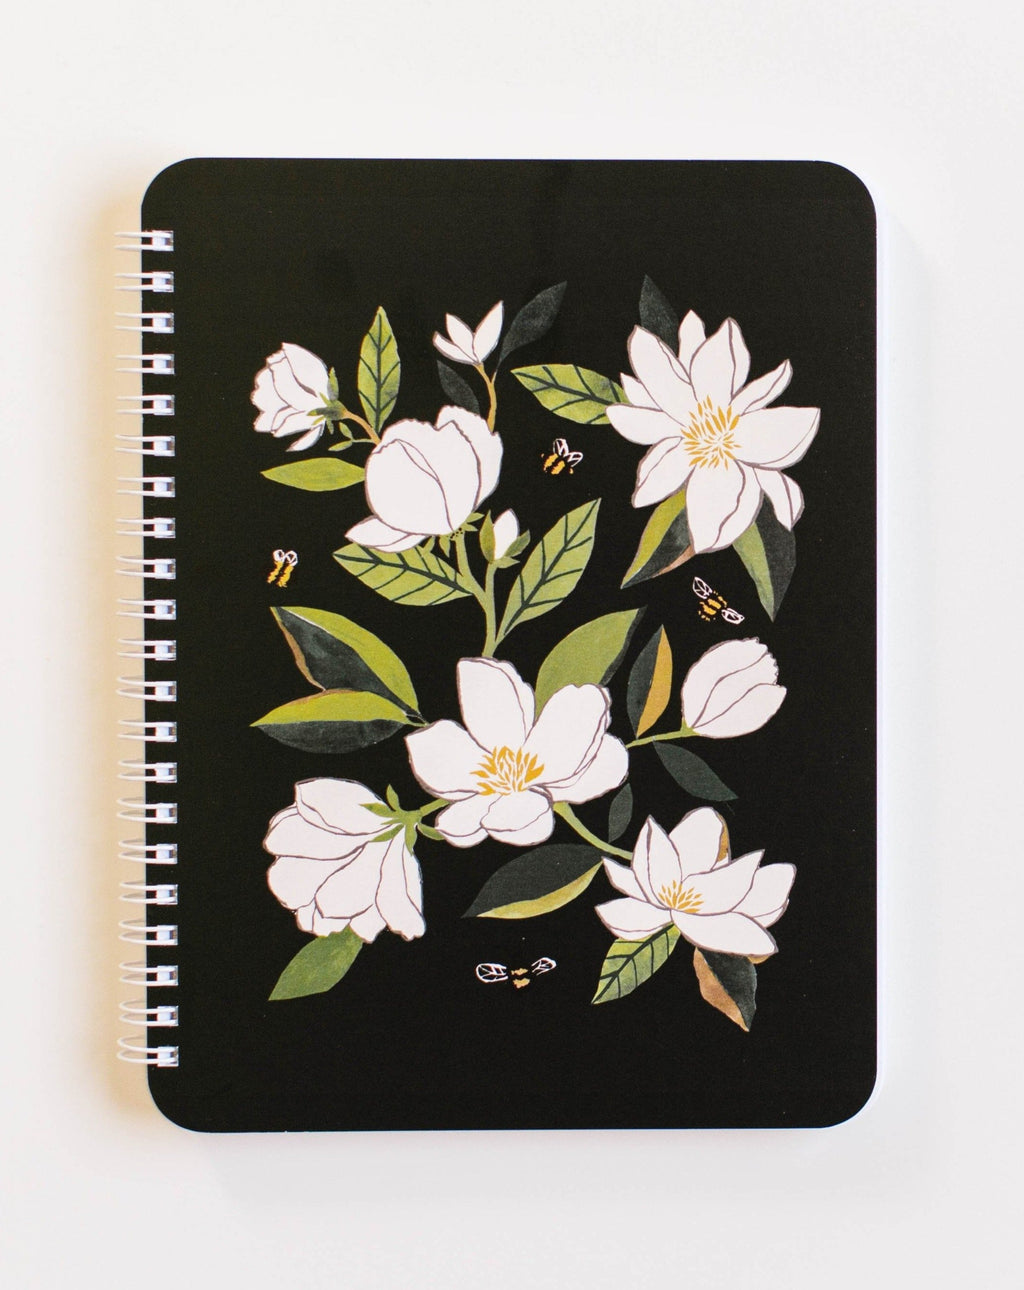 Magnolia Notebook 6 x 8